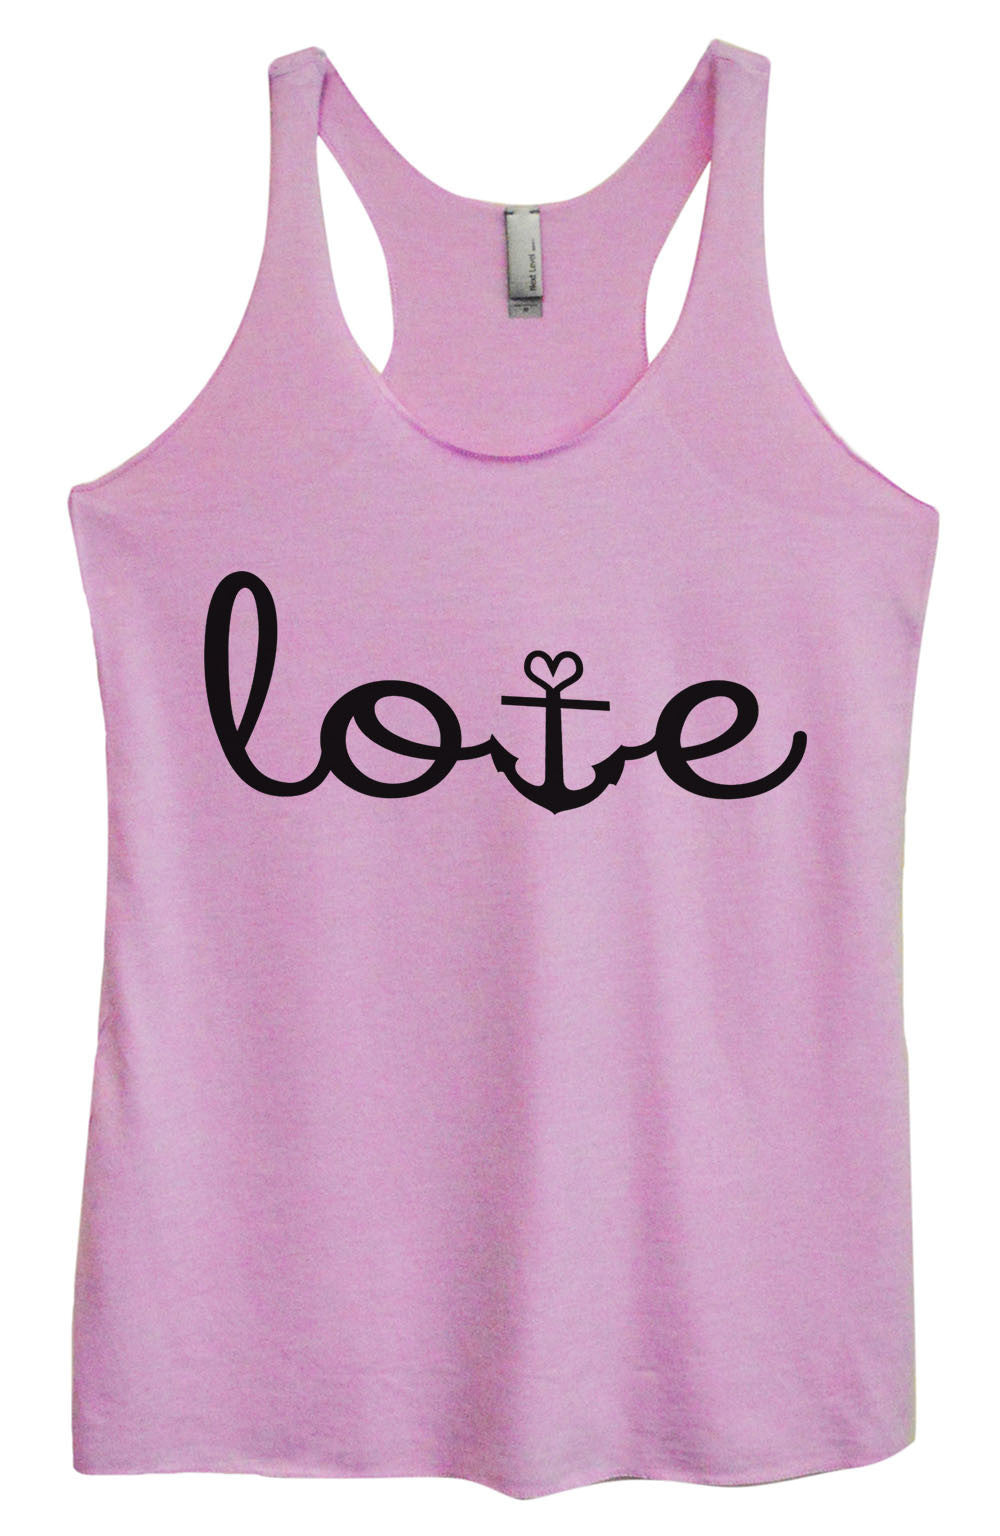 Womens Fashion Triblend Tank Top - Love - Tri-935 - Funny Shirts Tank Tops Burnouts and Triblends  - 1